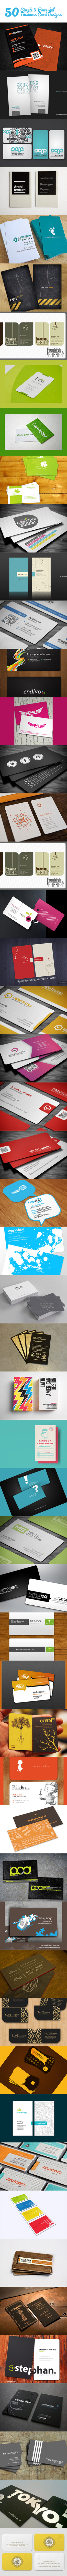 50 Simple & Powerful Business Card Designs --  www.cketch.com